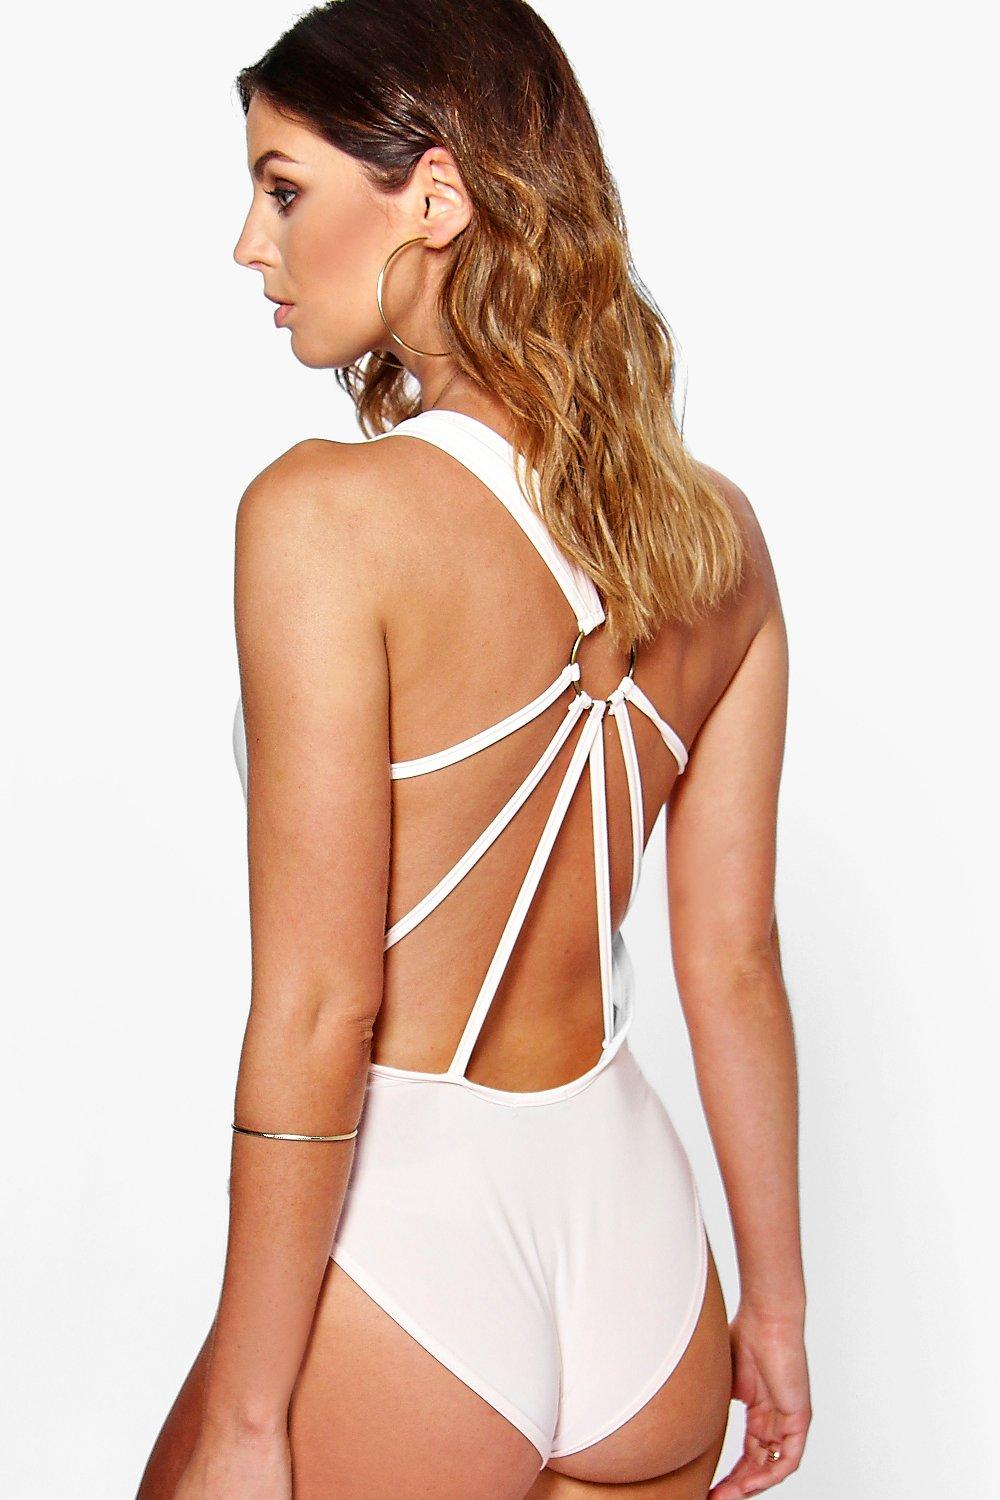 Lily Drape Strappy Trim Back Slinky Body